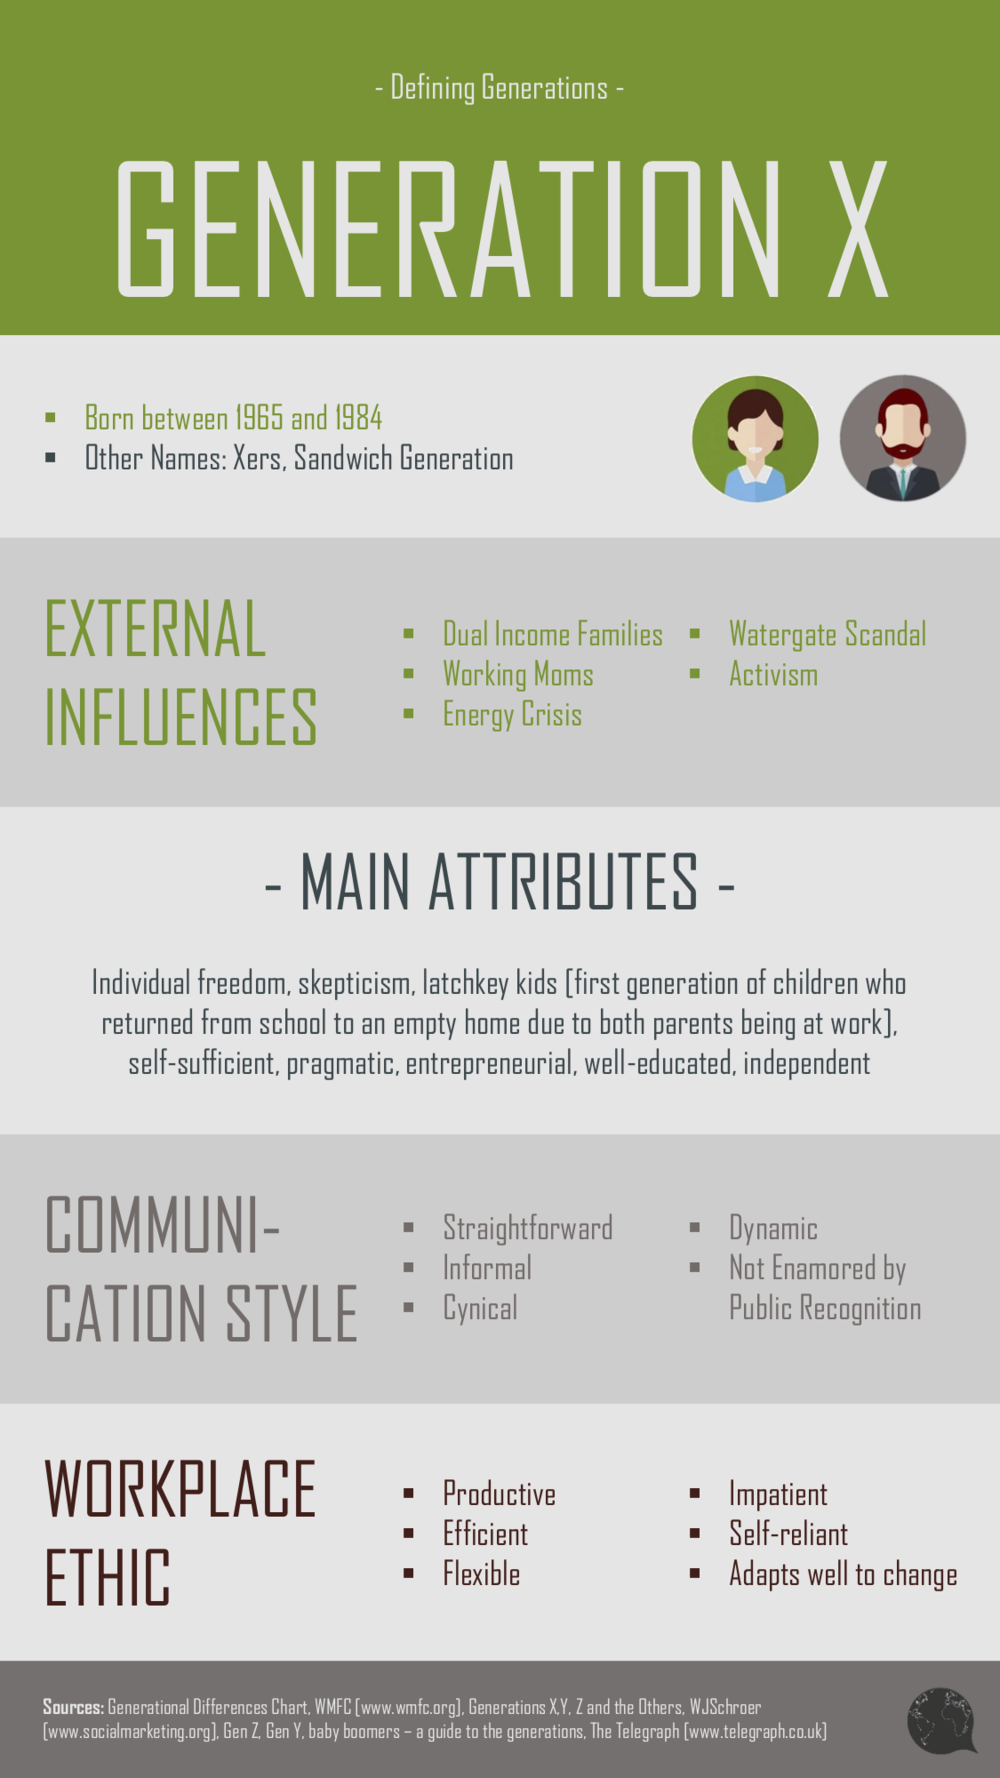 Defining Generations Infographic - Generation X.png